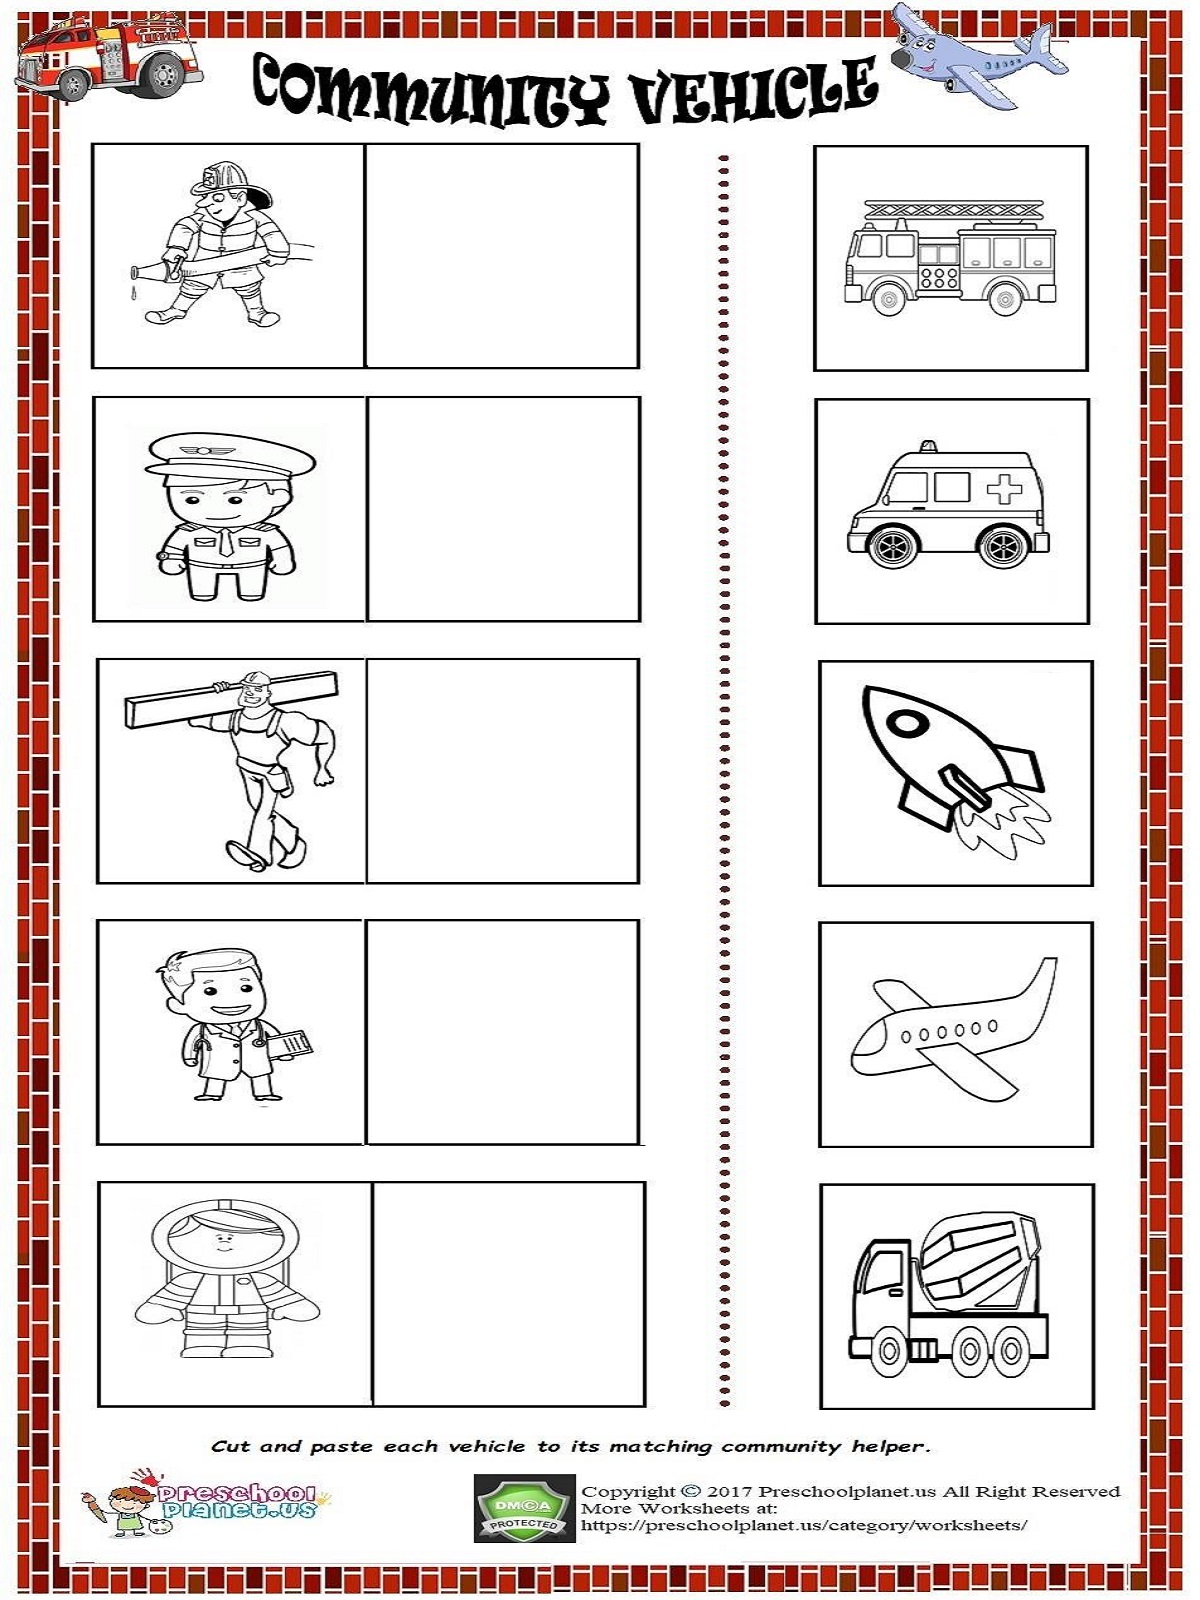 community vehicle worksheet